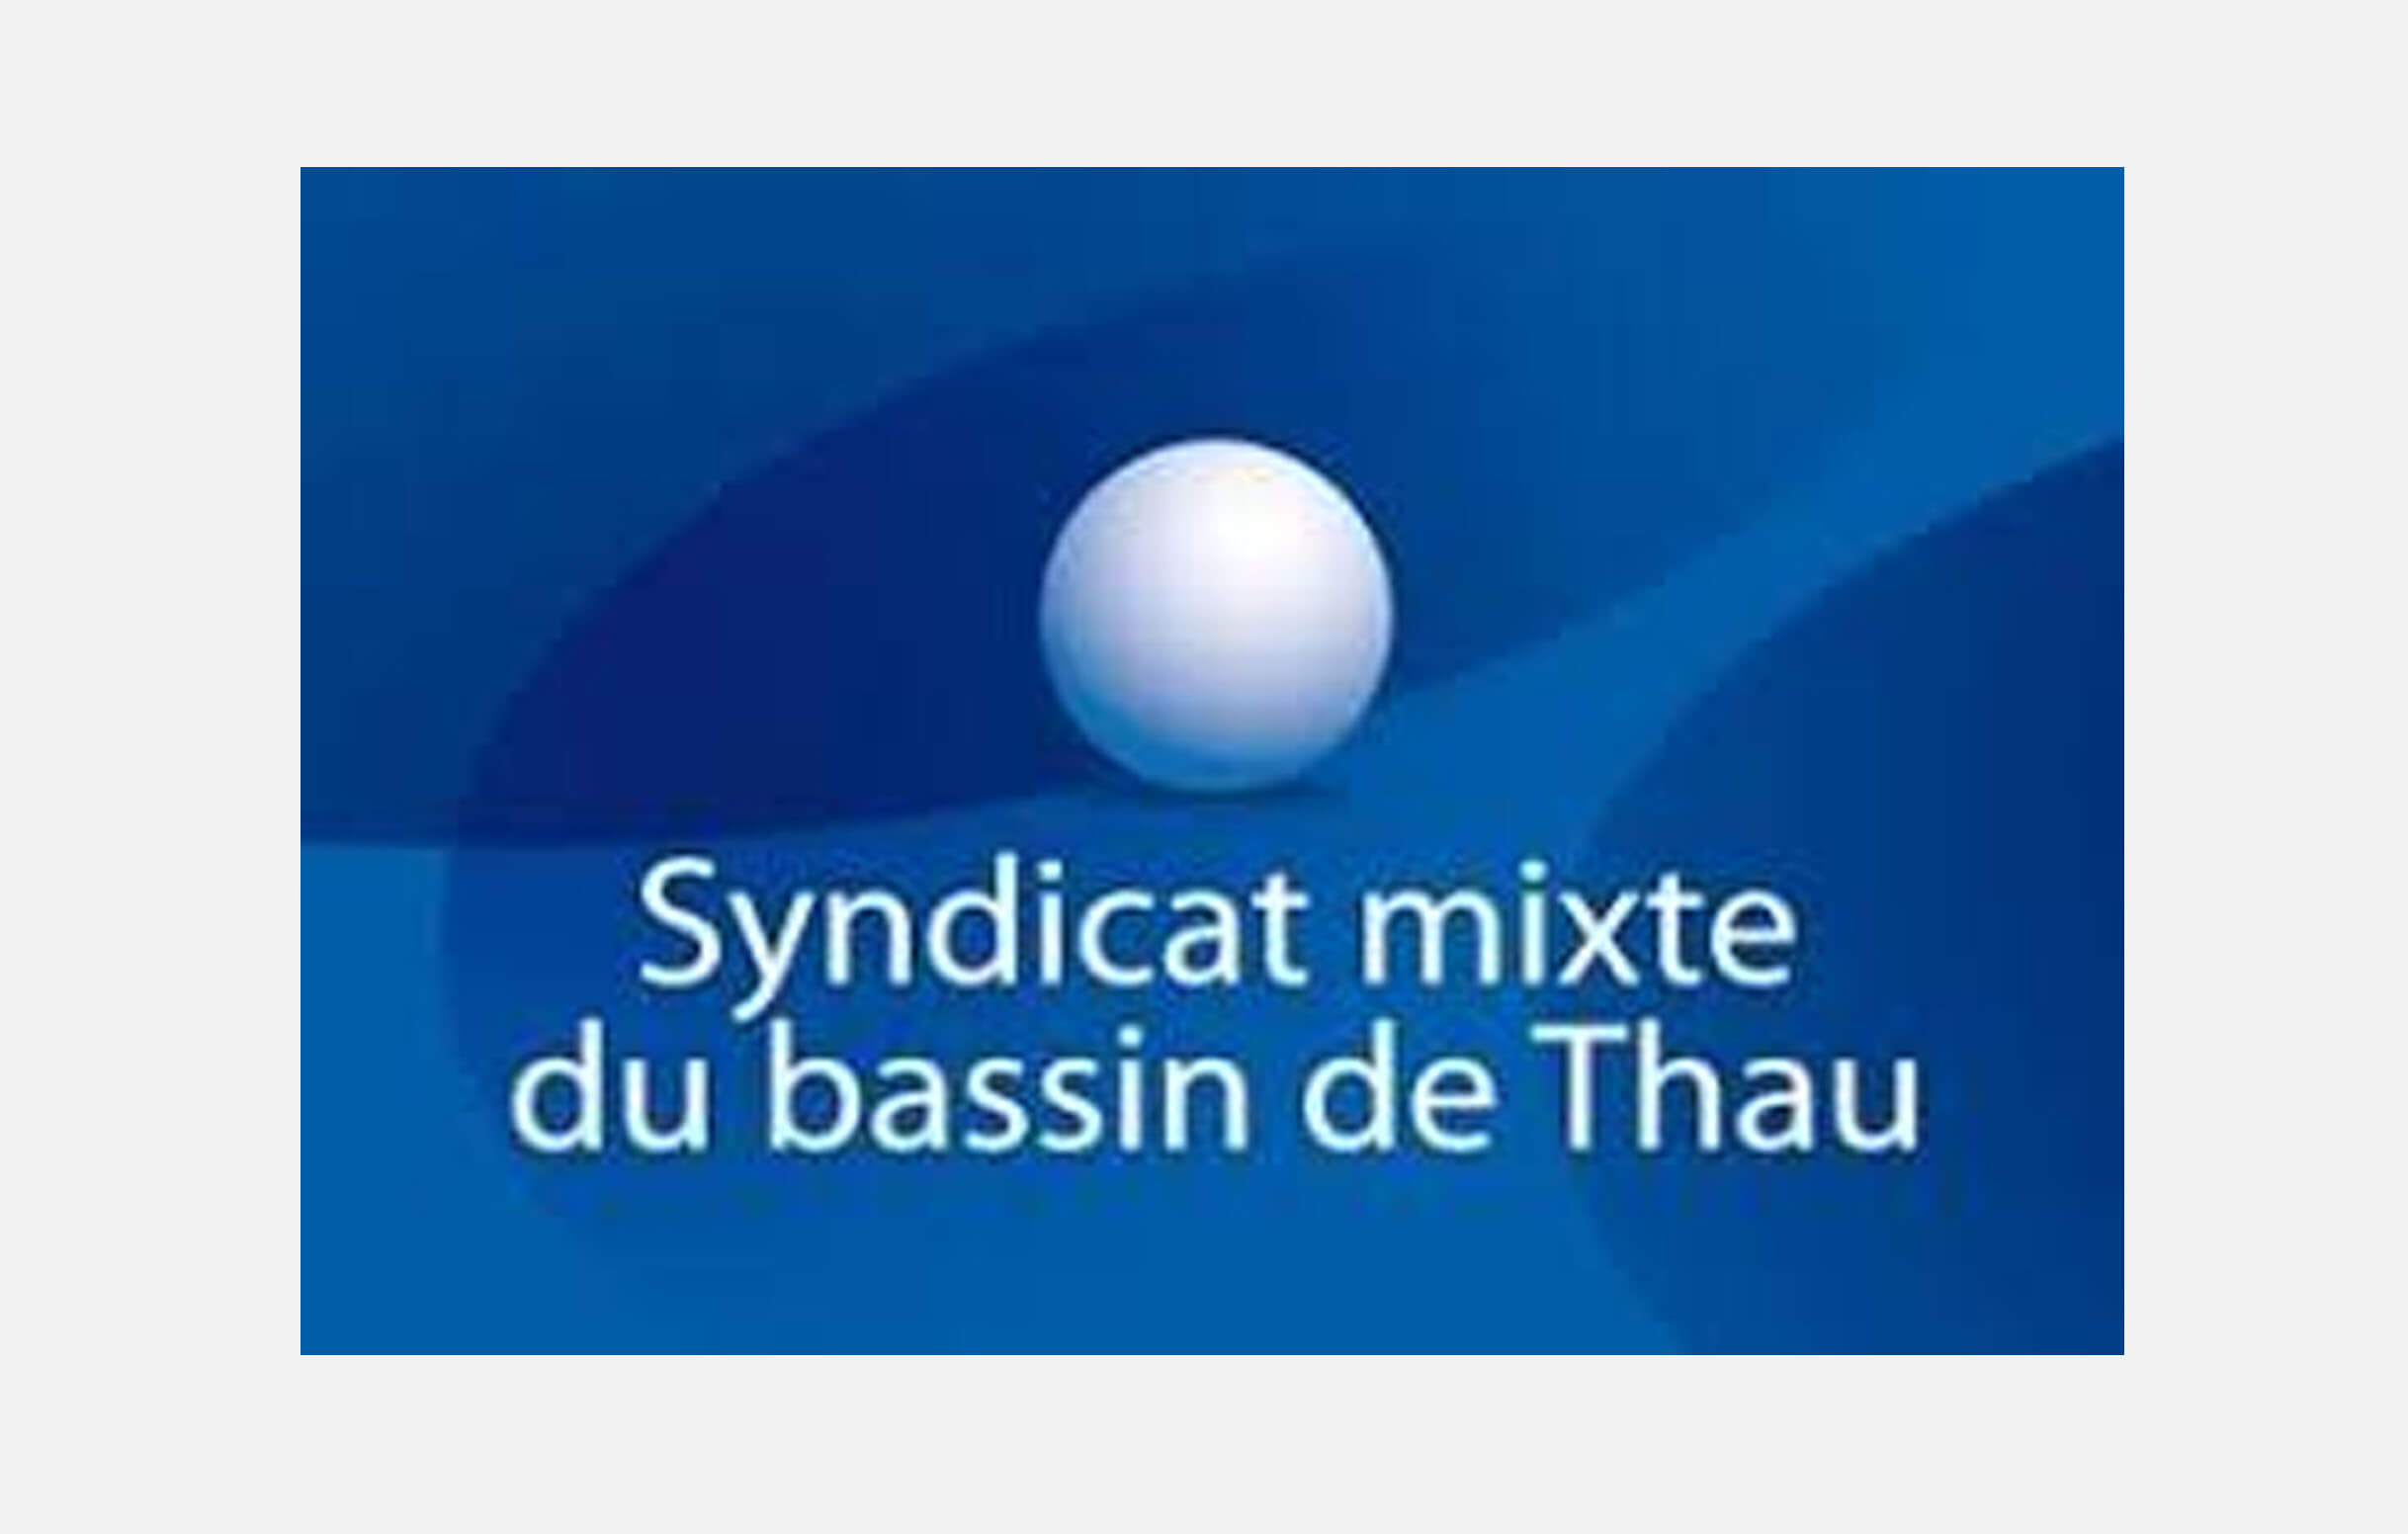 syndicat-mixte-bassin-thau